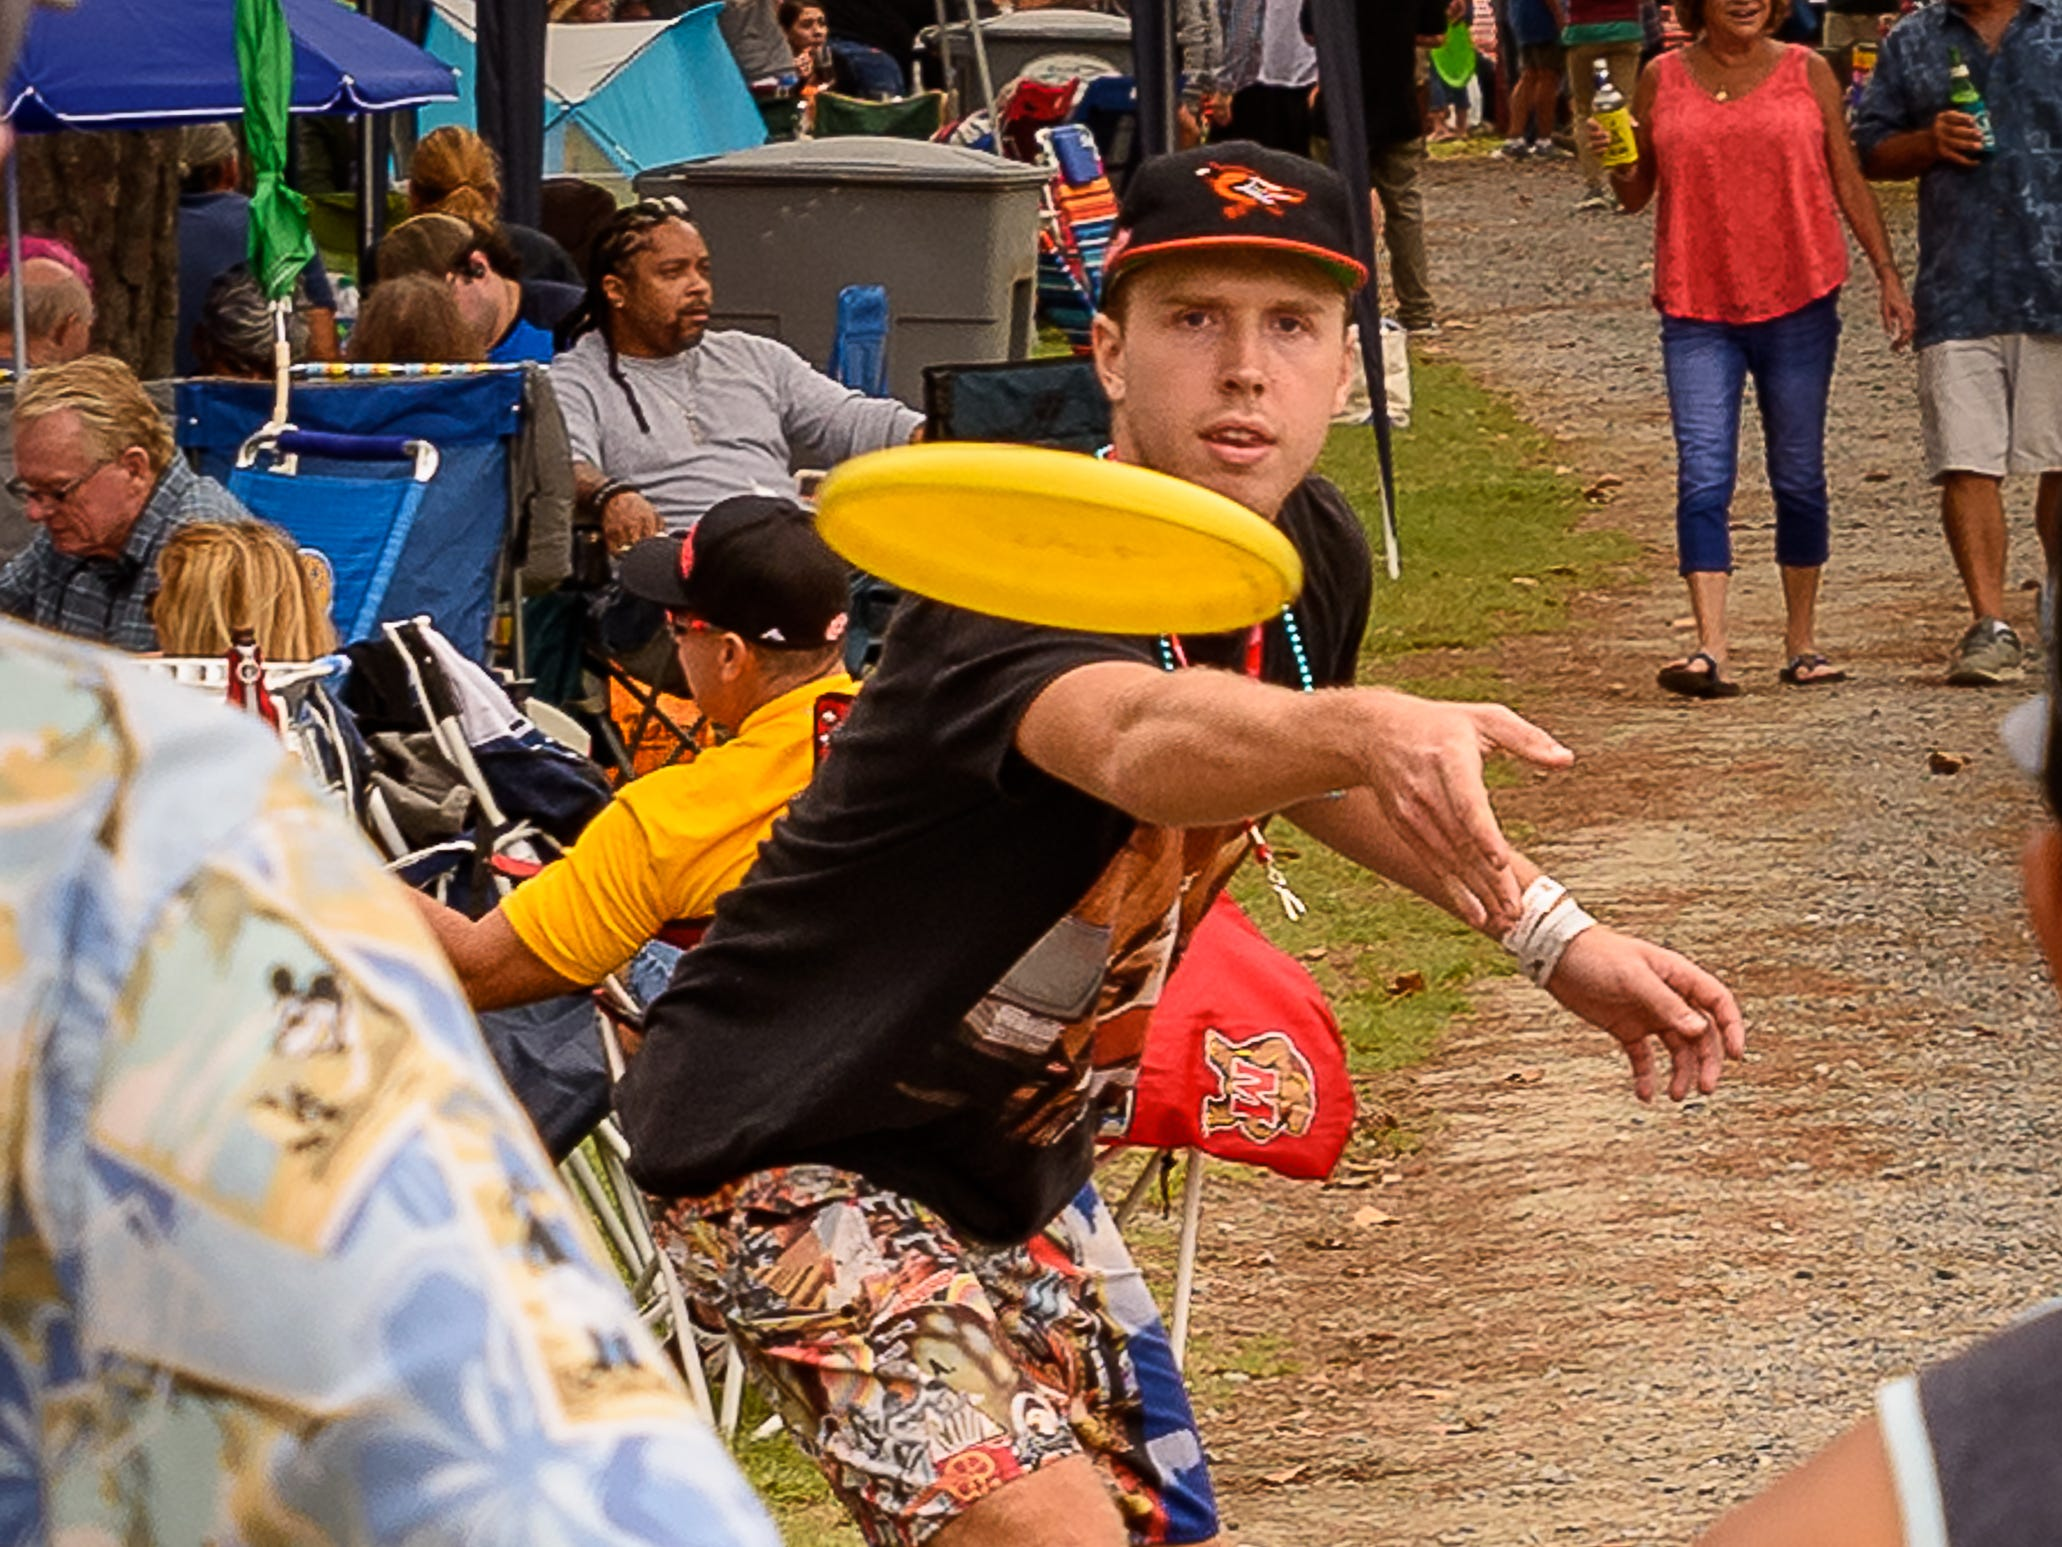 A little Frisbee game is under way to build up the appetite at the Chincoteague festival.